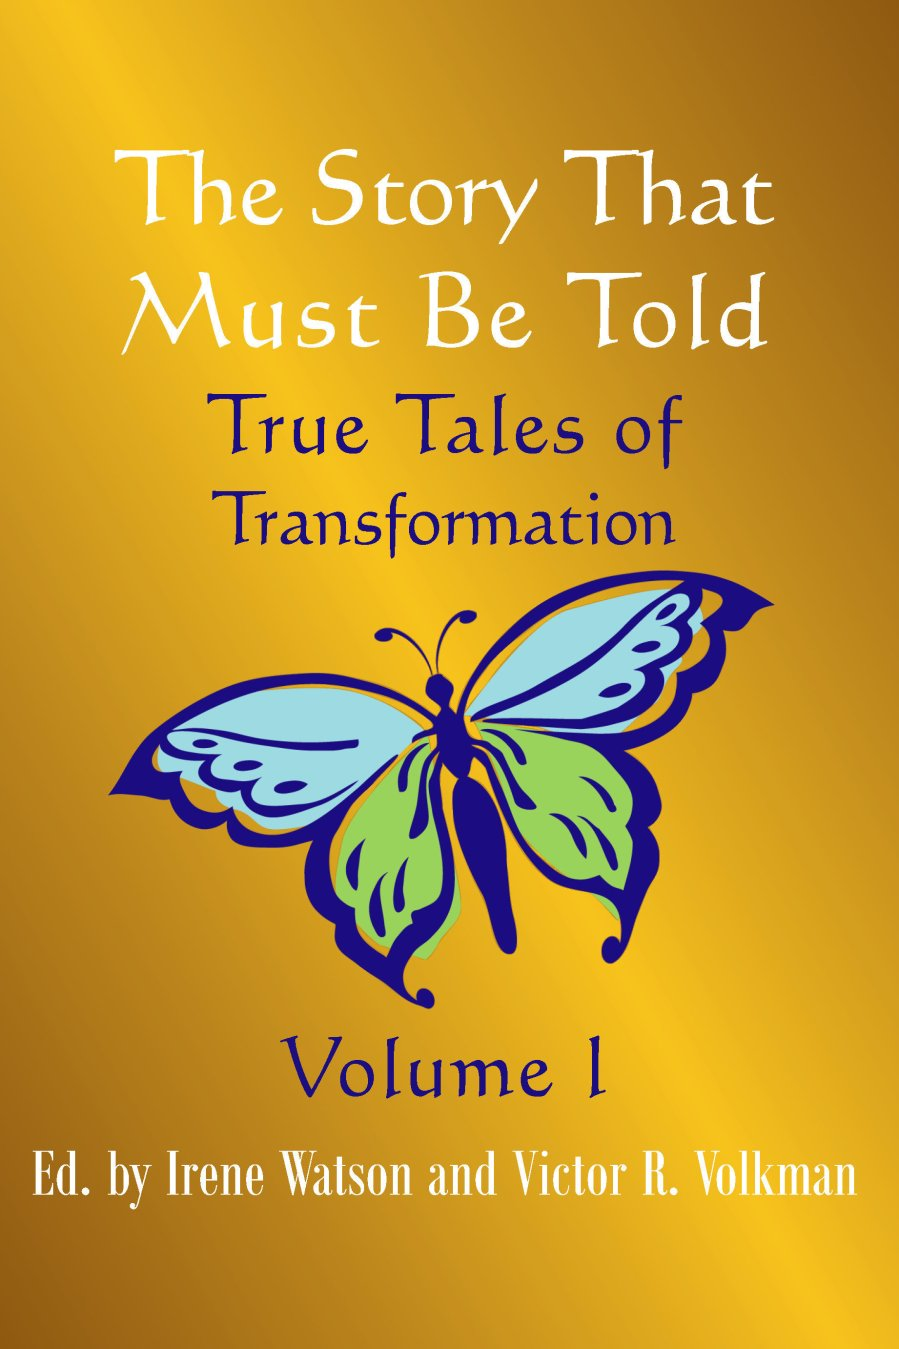 The Story That Must Be Told: True Tales of Transformation 978-1-932690-38-5